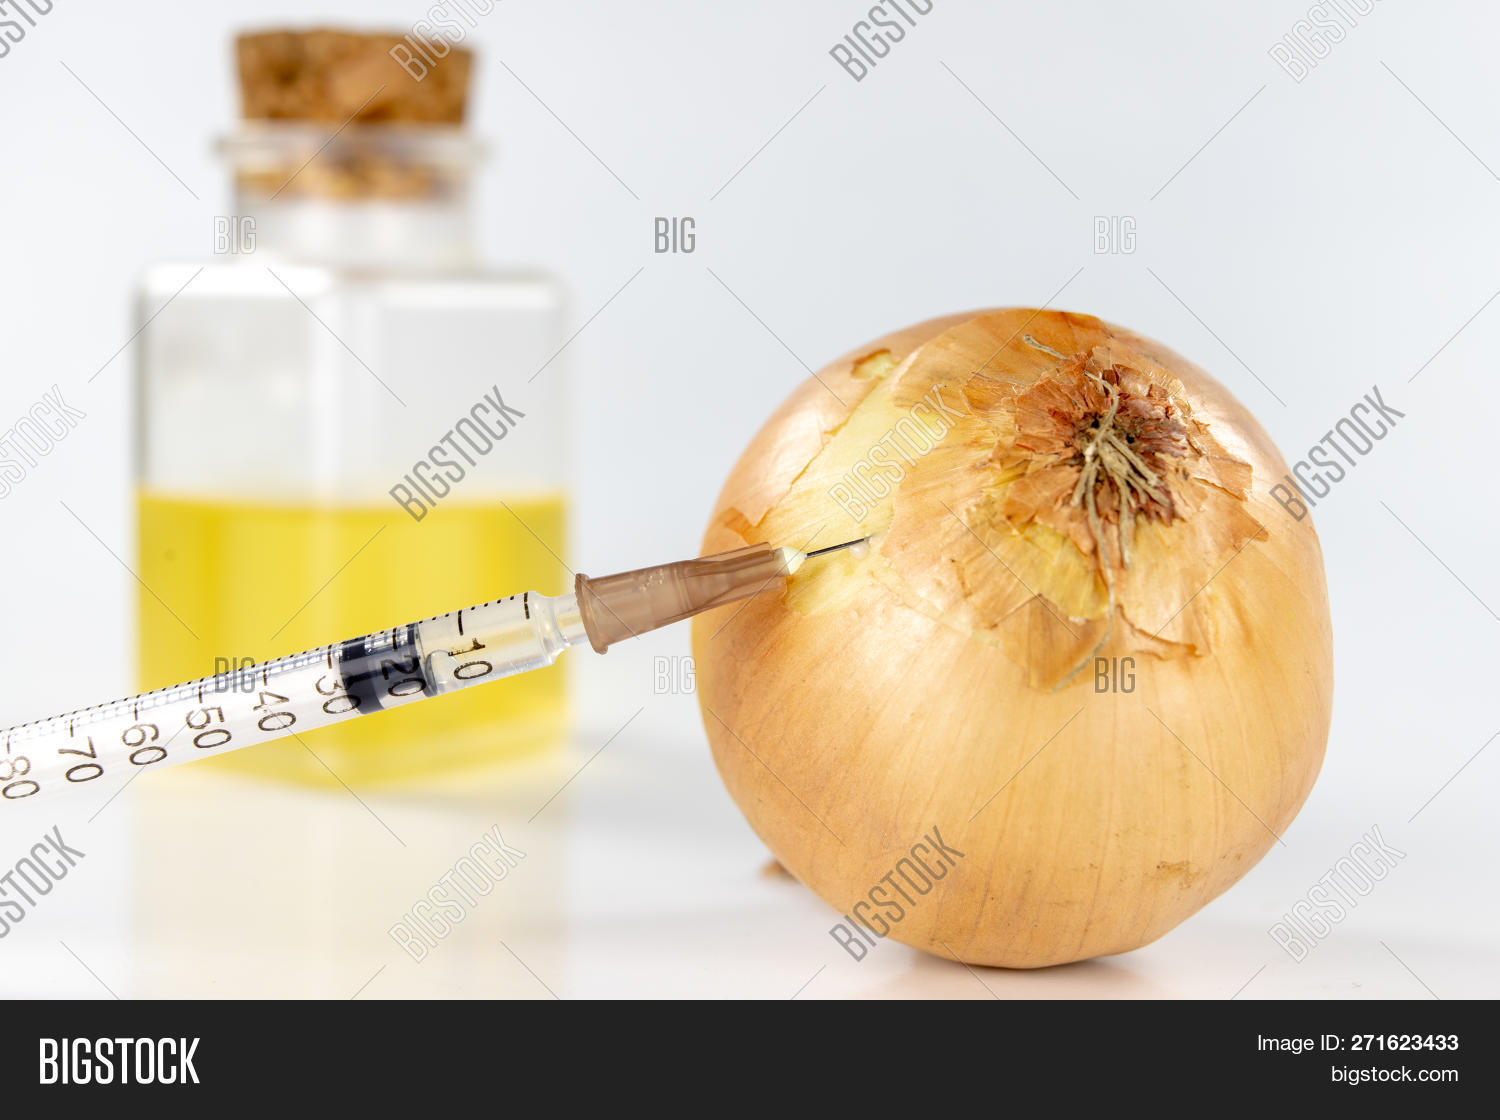 Healthy Onion Juice Image Photo Free Trial Bigstock